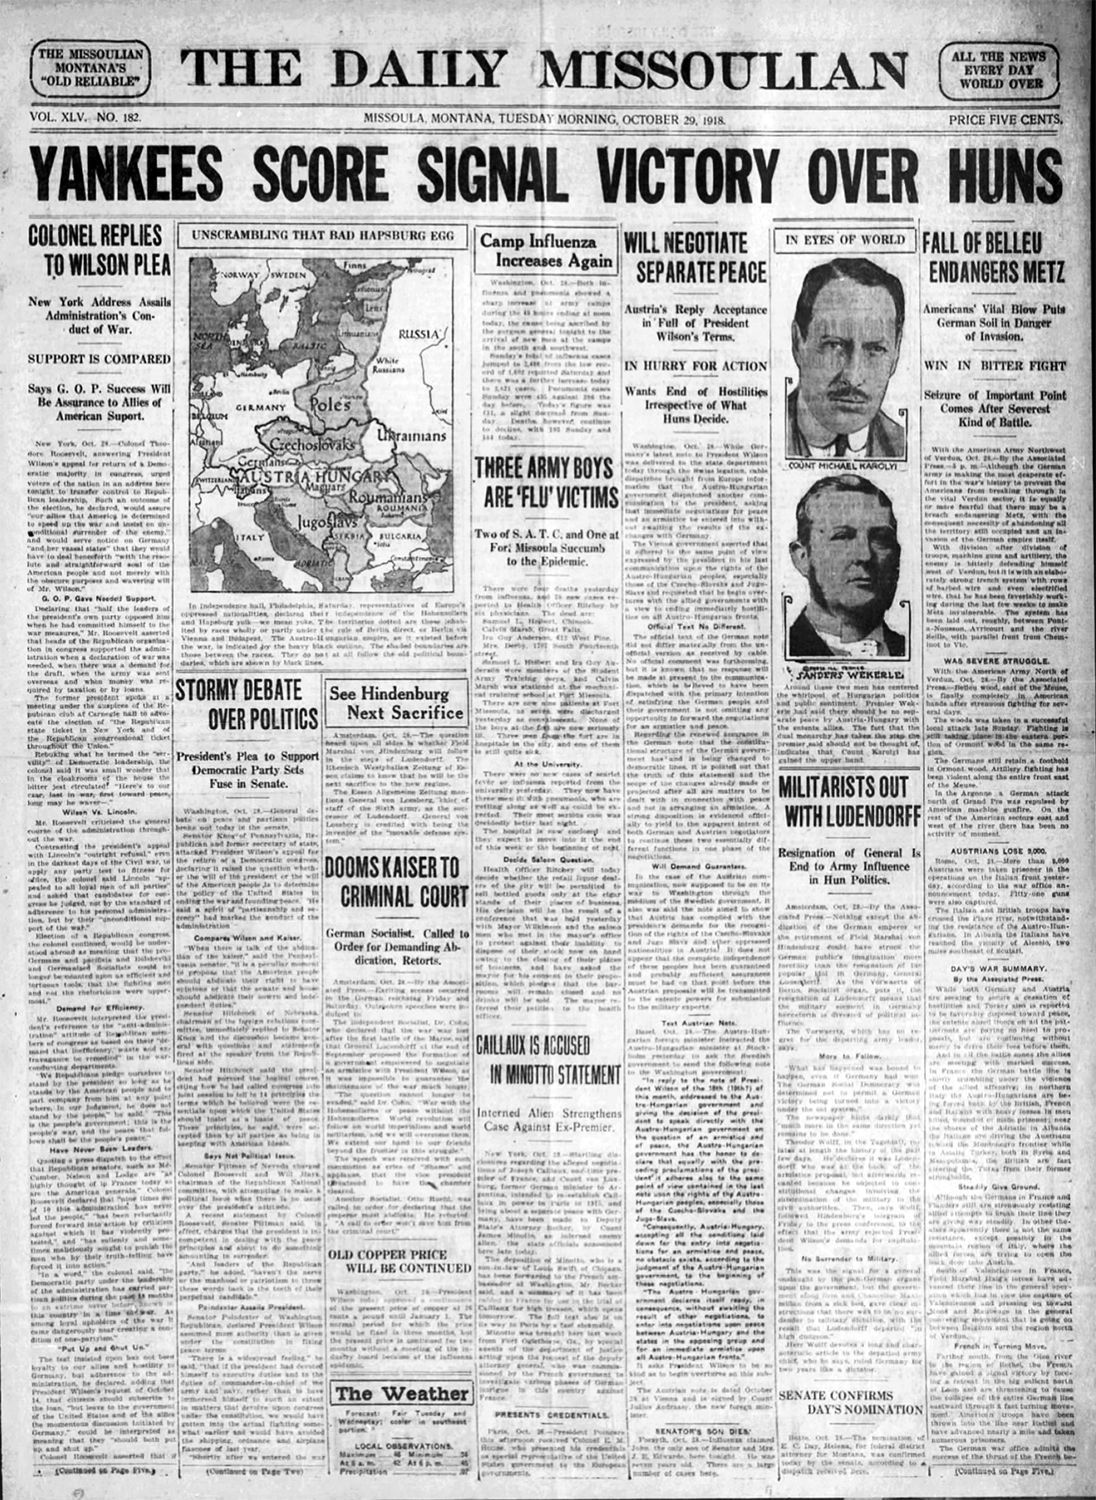 The Missoulian, Tuesday, October 29, 1918